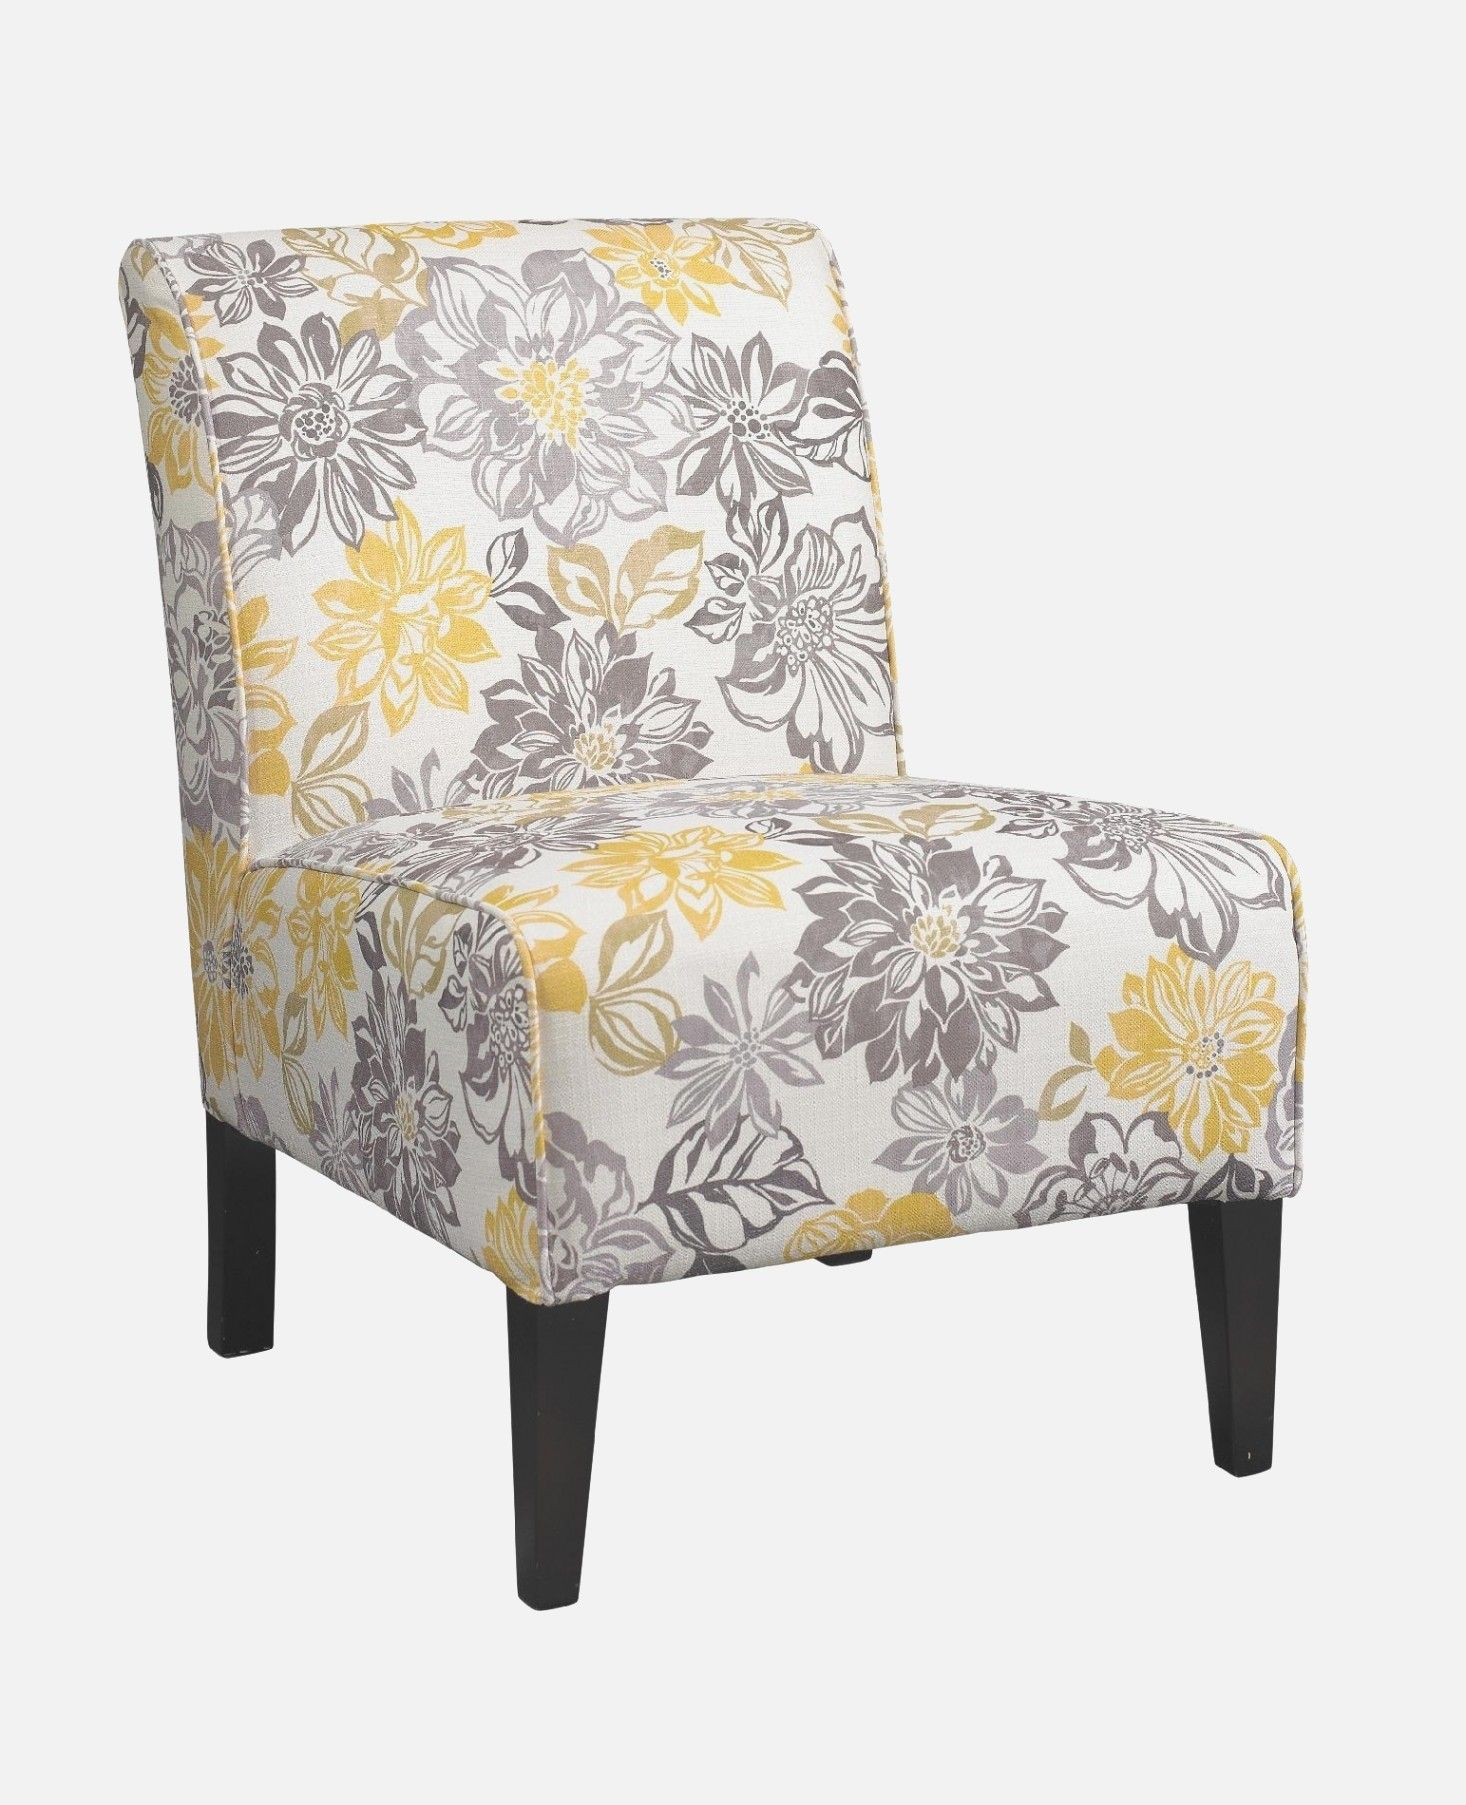 Genial Sears Accent Chairs   Accent Chairs At Sears, Accent Chairs At Sears Ca,  Sears